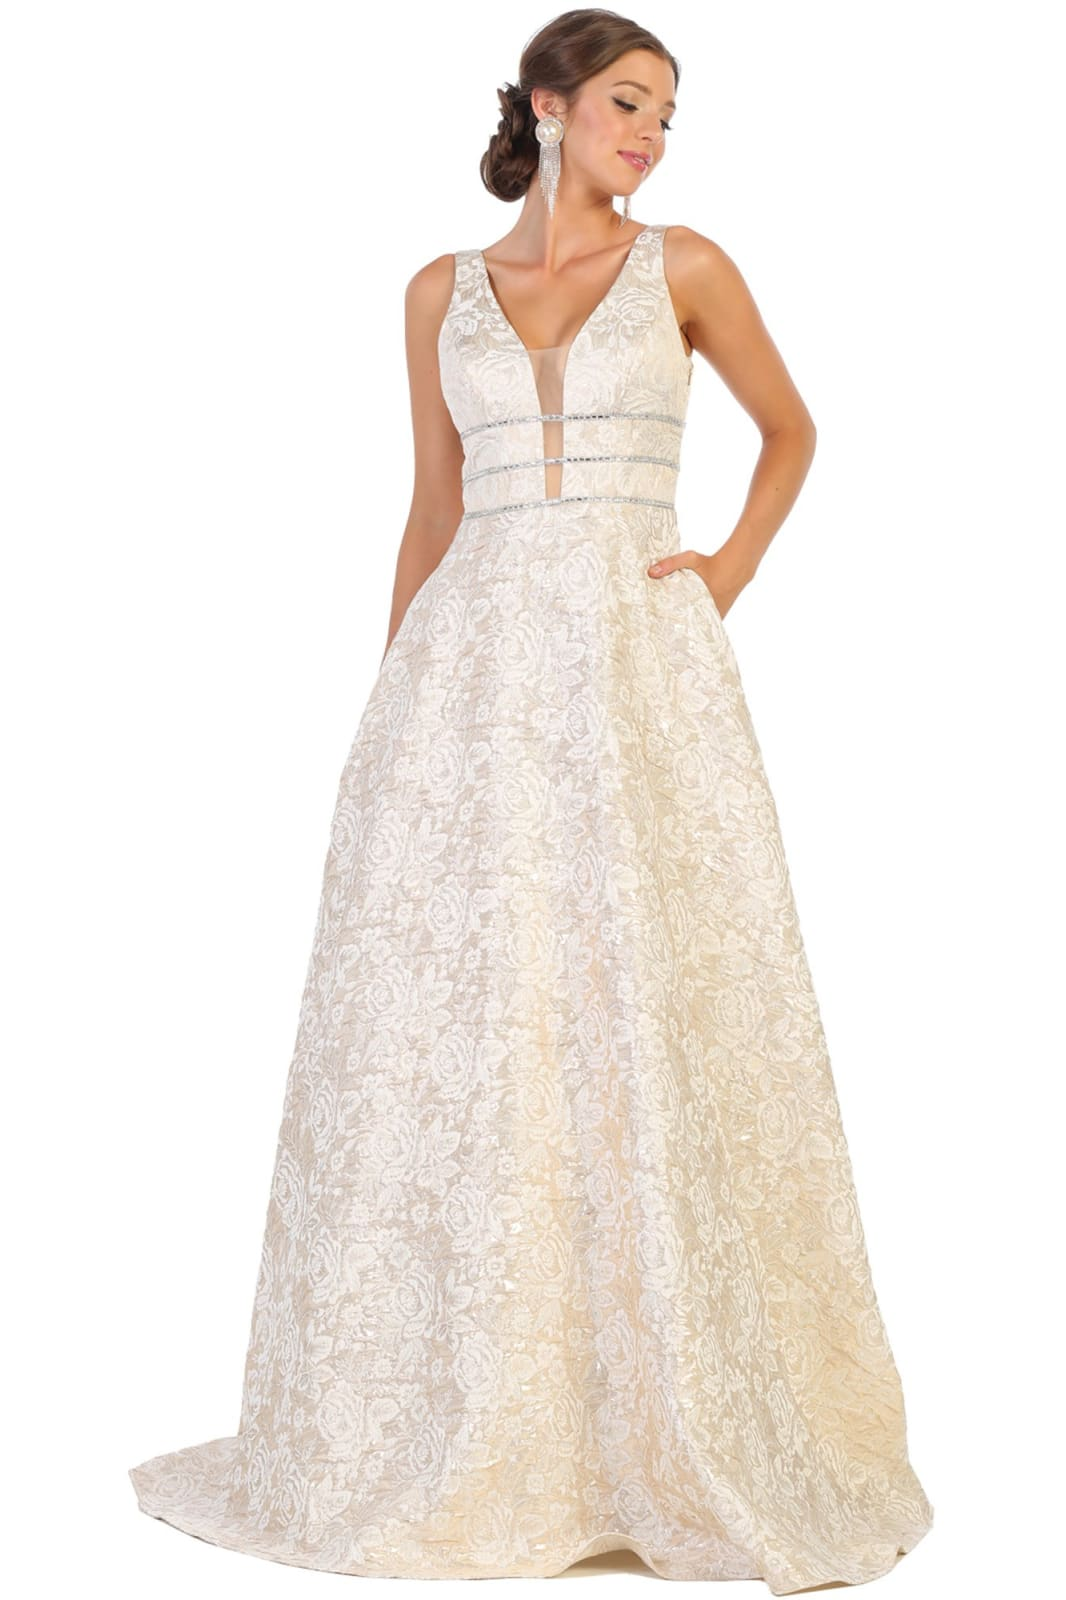 Formal Floral Evening Gown - LA7787 - GOLD / 4